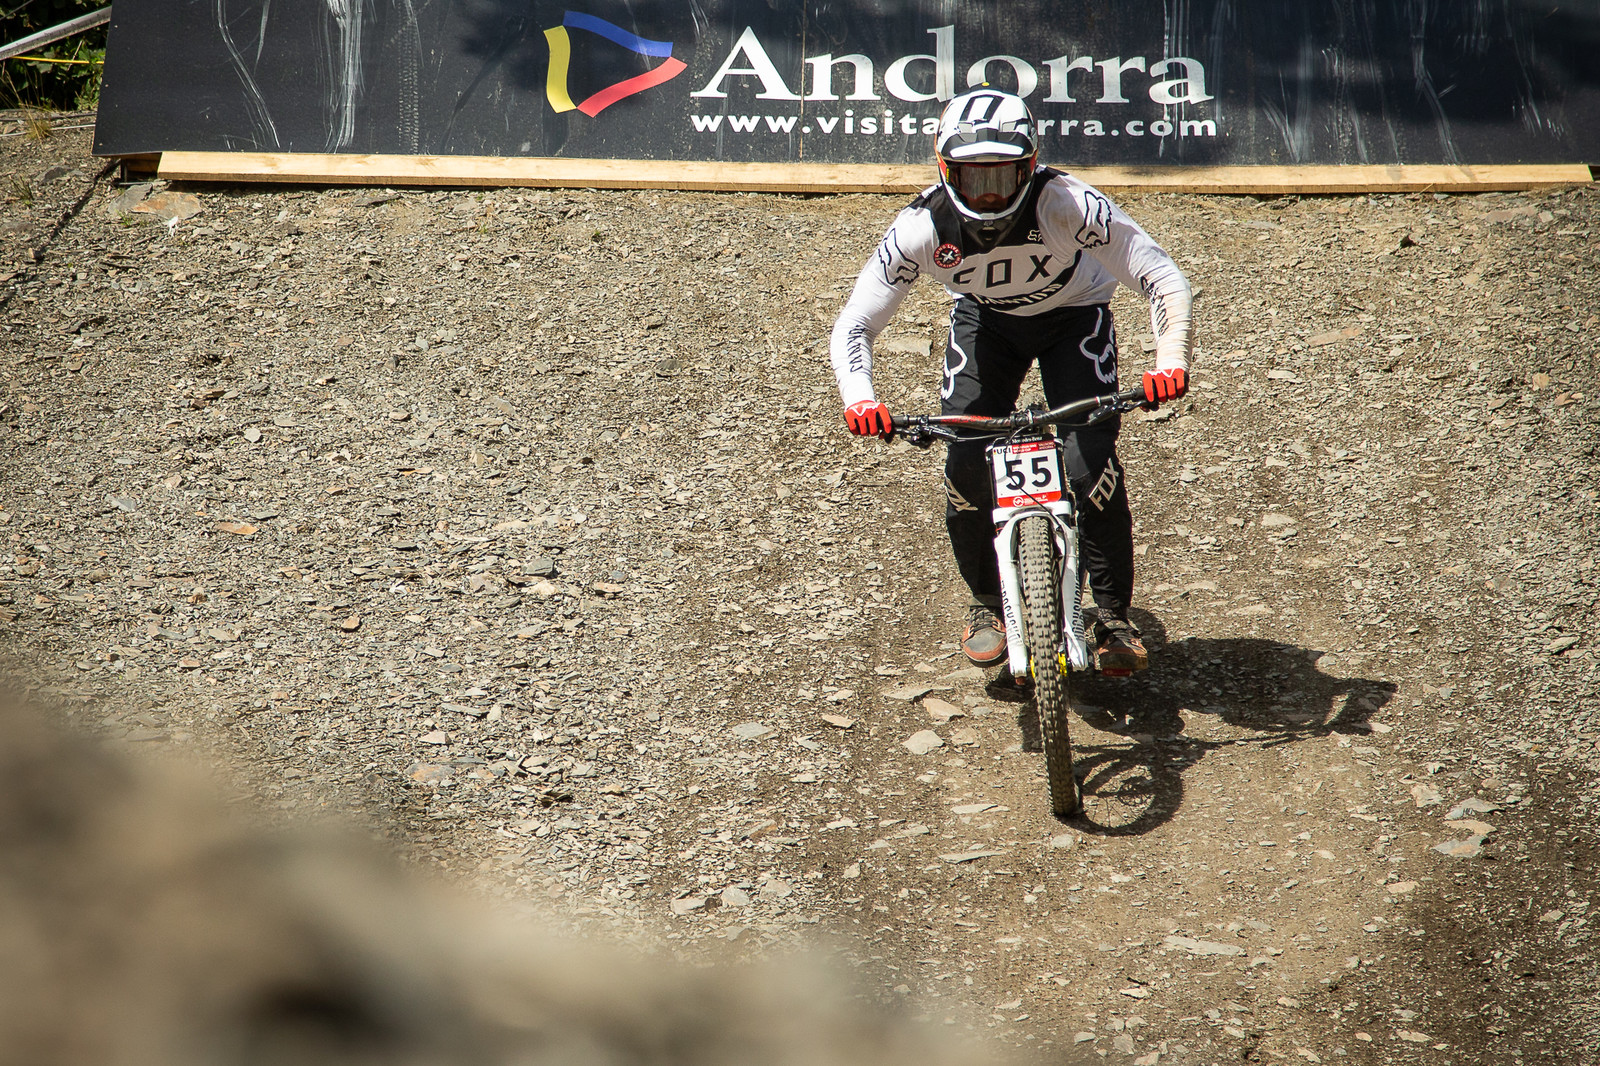 Magnus Manson - G-Out Project - Andorra World Cup DH - Mountain Biking Pictures - Vital MTB